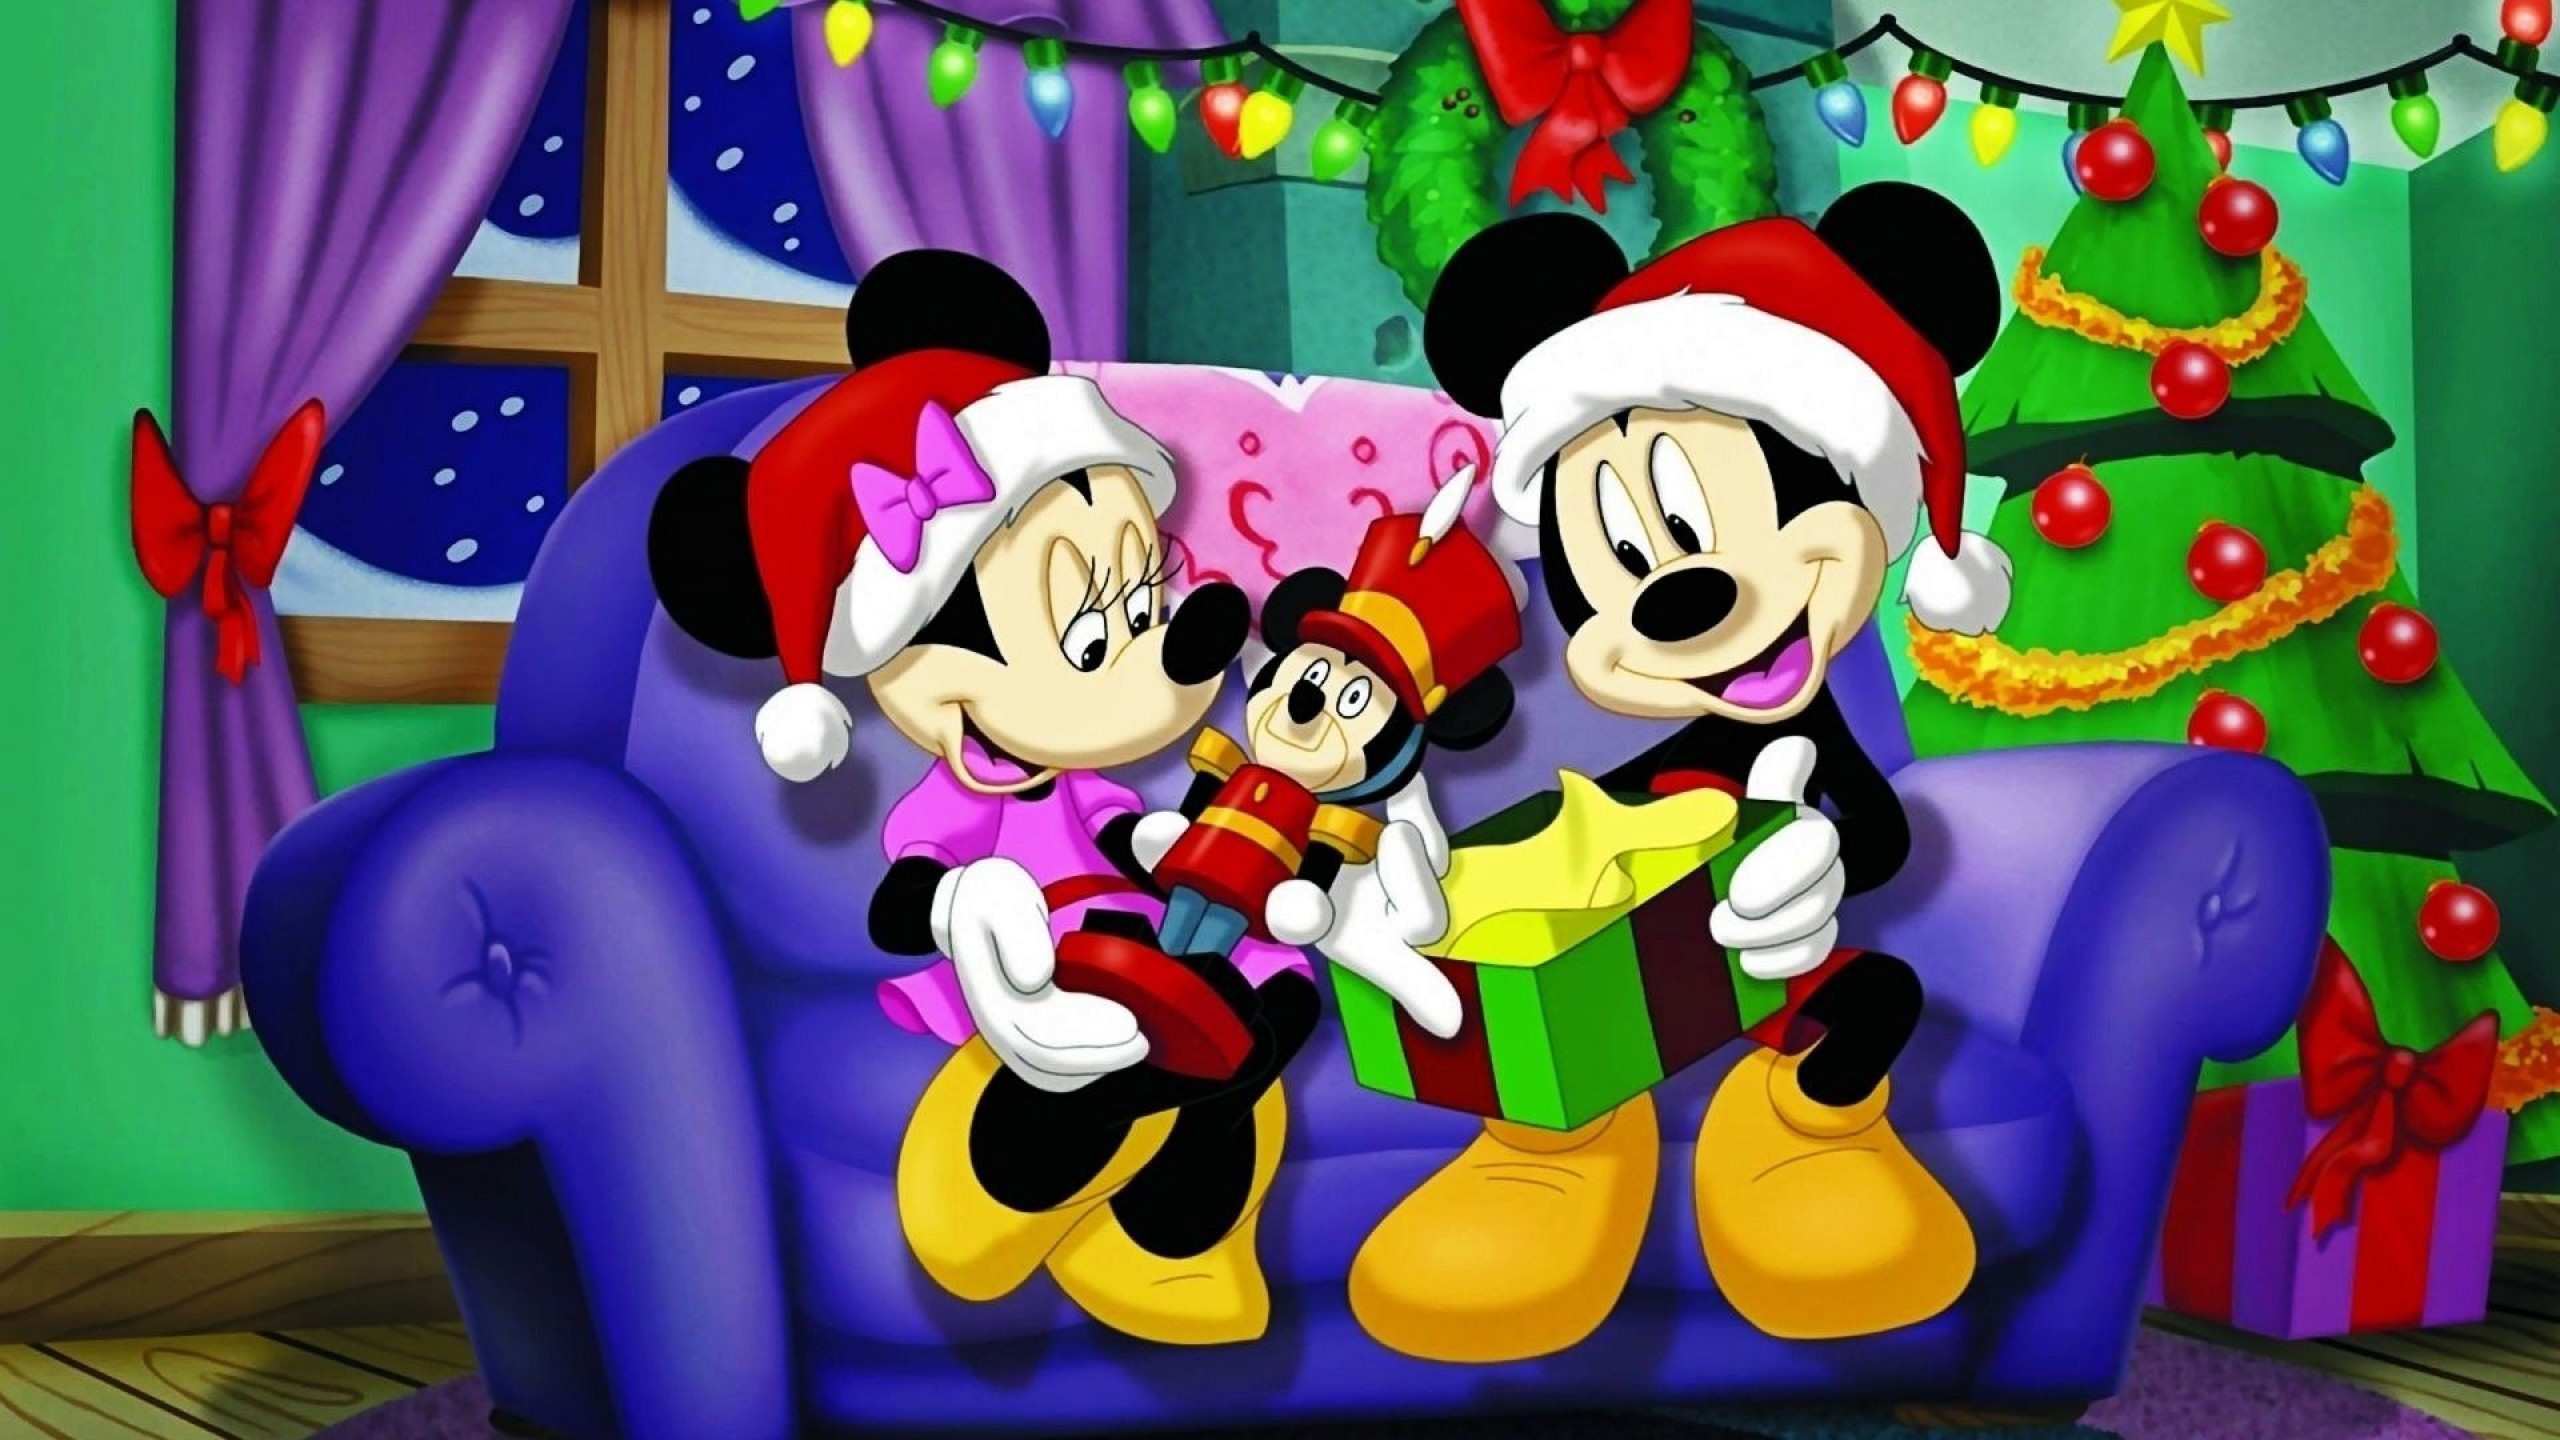 Mickey And Minnie Mouse Cartoons Wallpaper 2560x1440 1287541 Wallpaperup